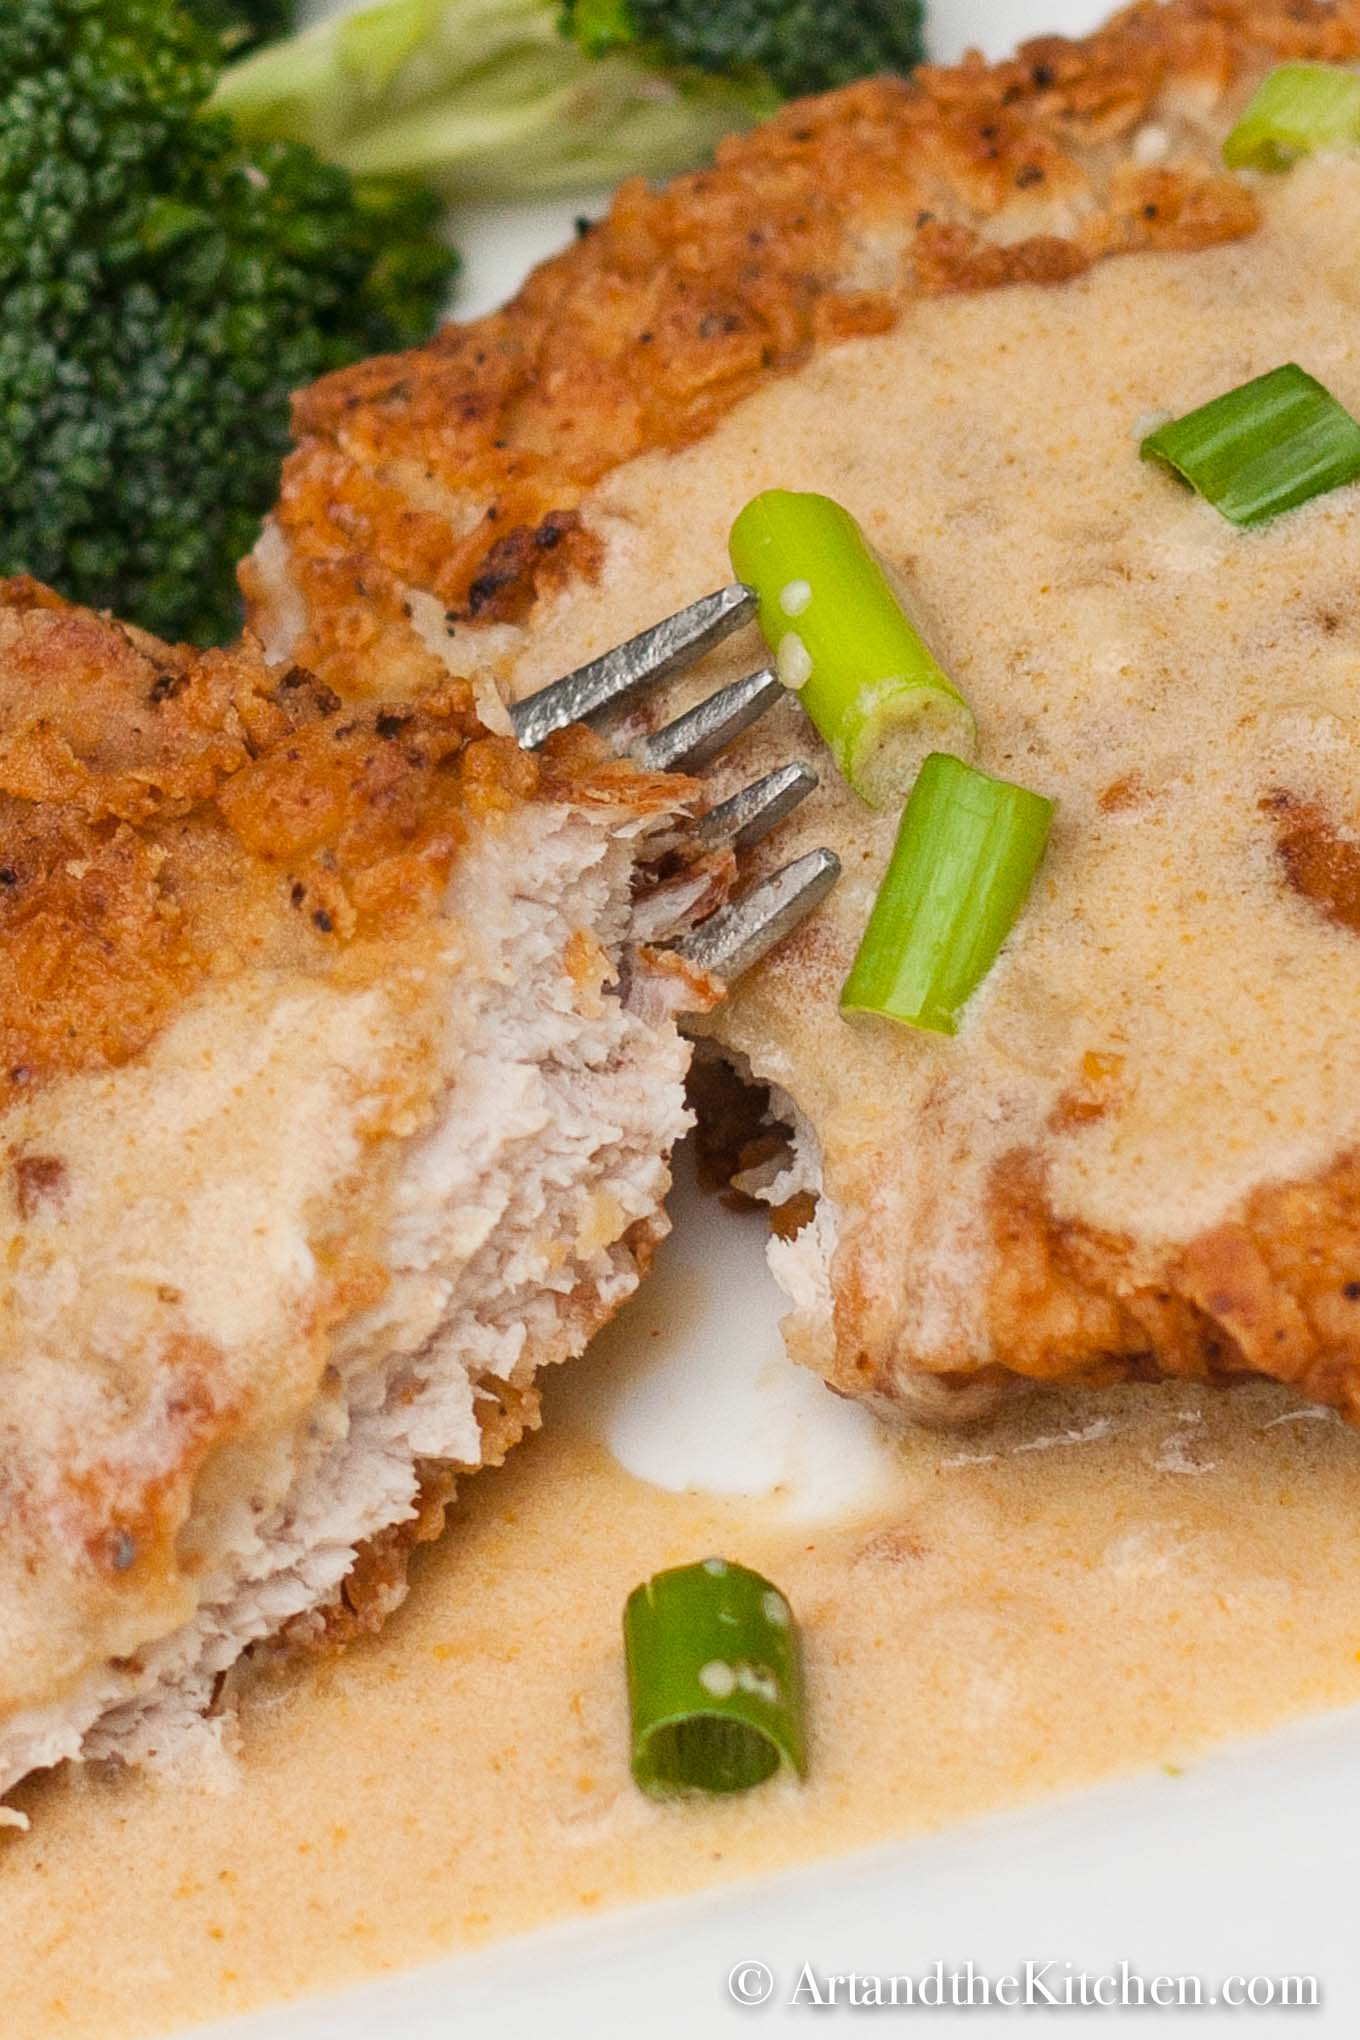 Golden brown fried pork schnitzel topped with a mustard sauce and garnished with green onion slices.